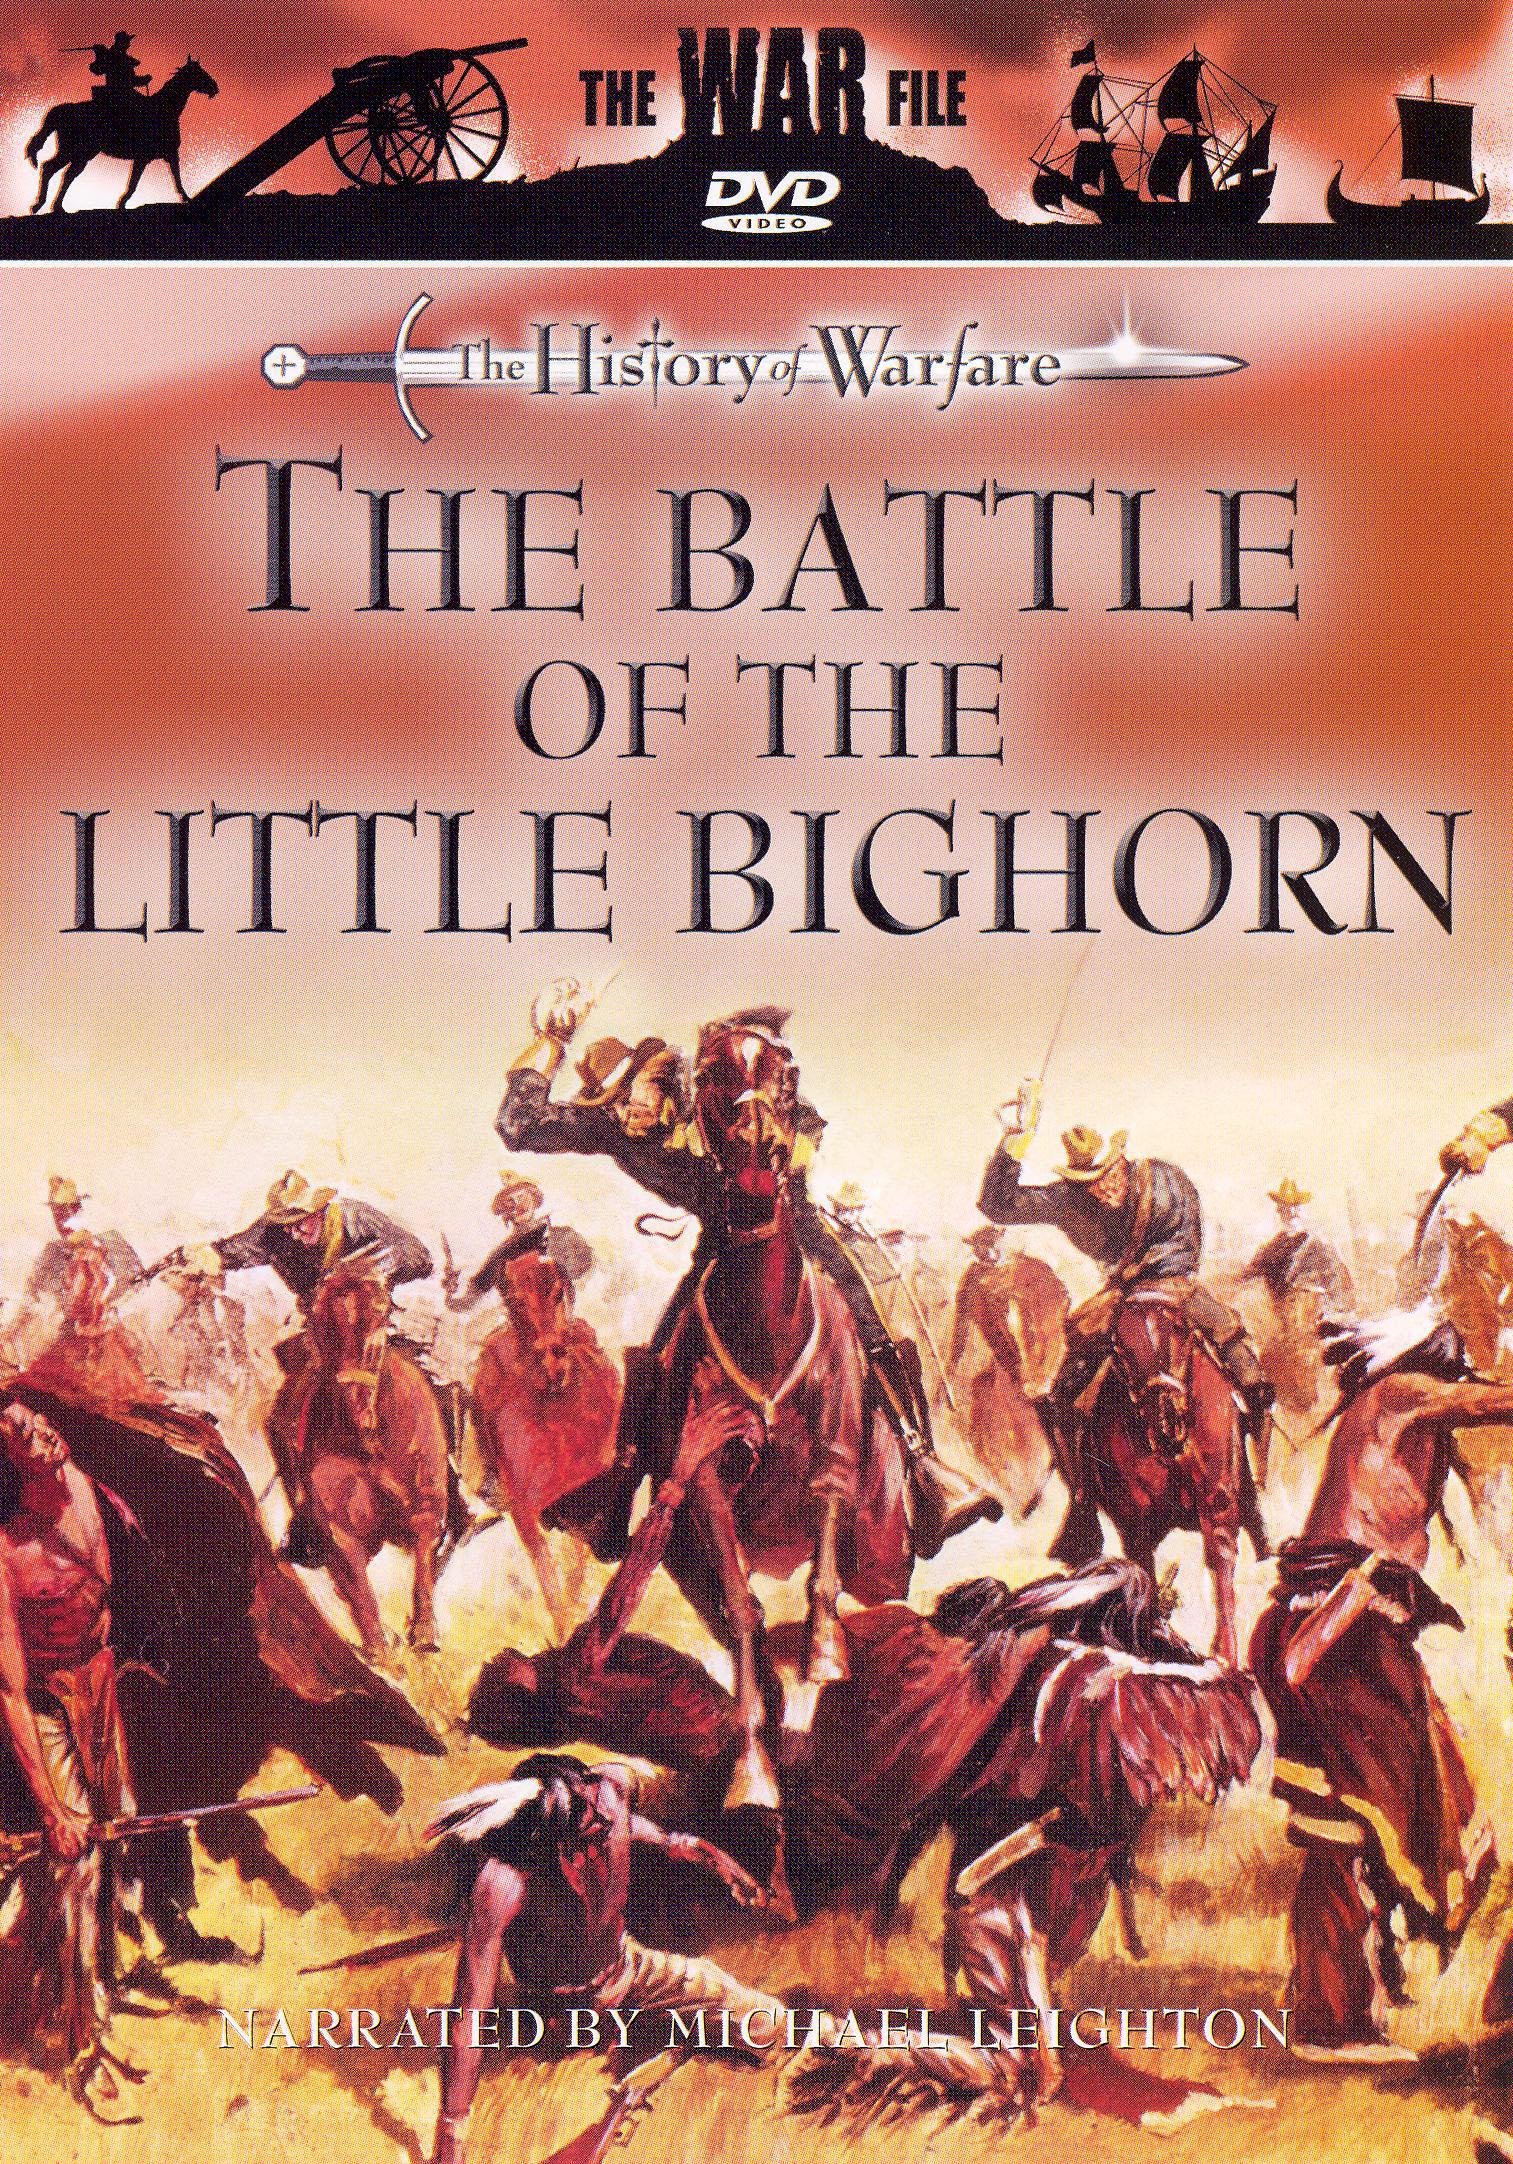 essay on the battle of little bighorn The battle of little big hornthe battle of little big horn is a large piece of american history george custer, was a united states army officer who won fame as a civil war general and an indian fighter in the west.